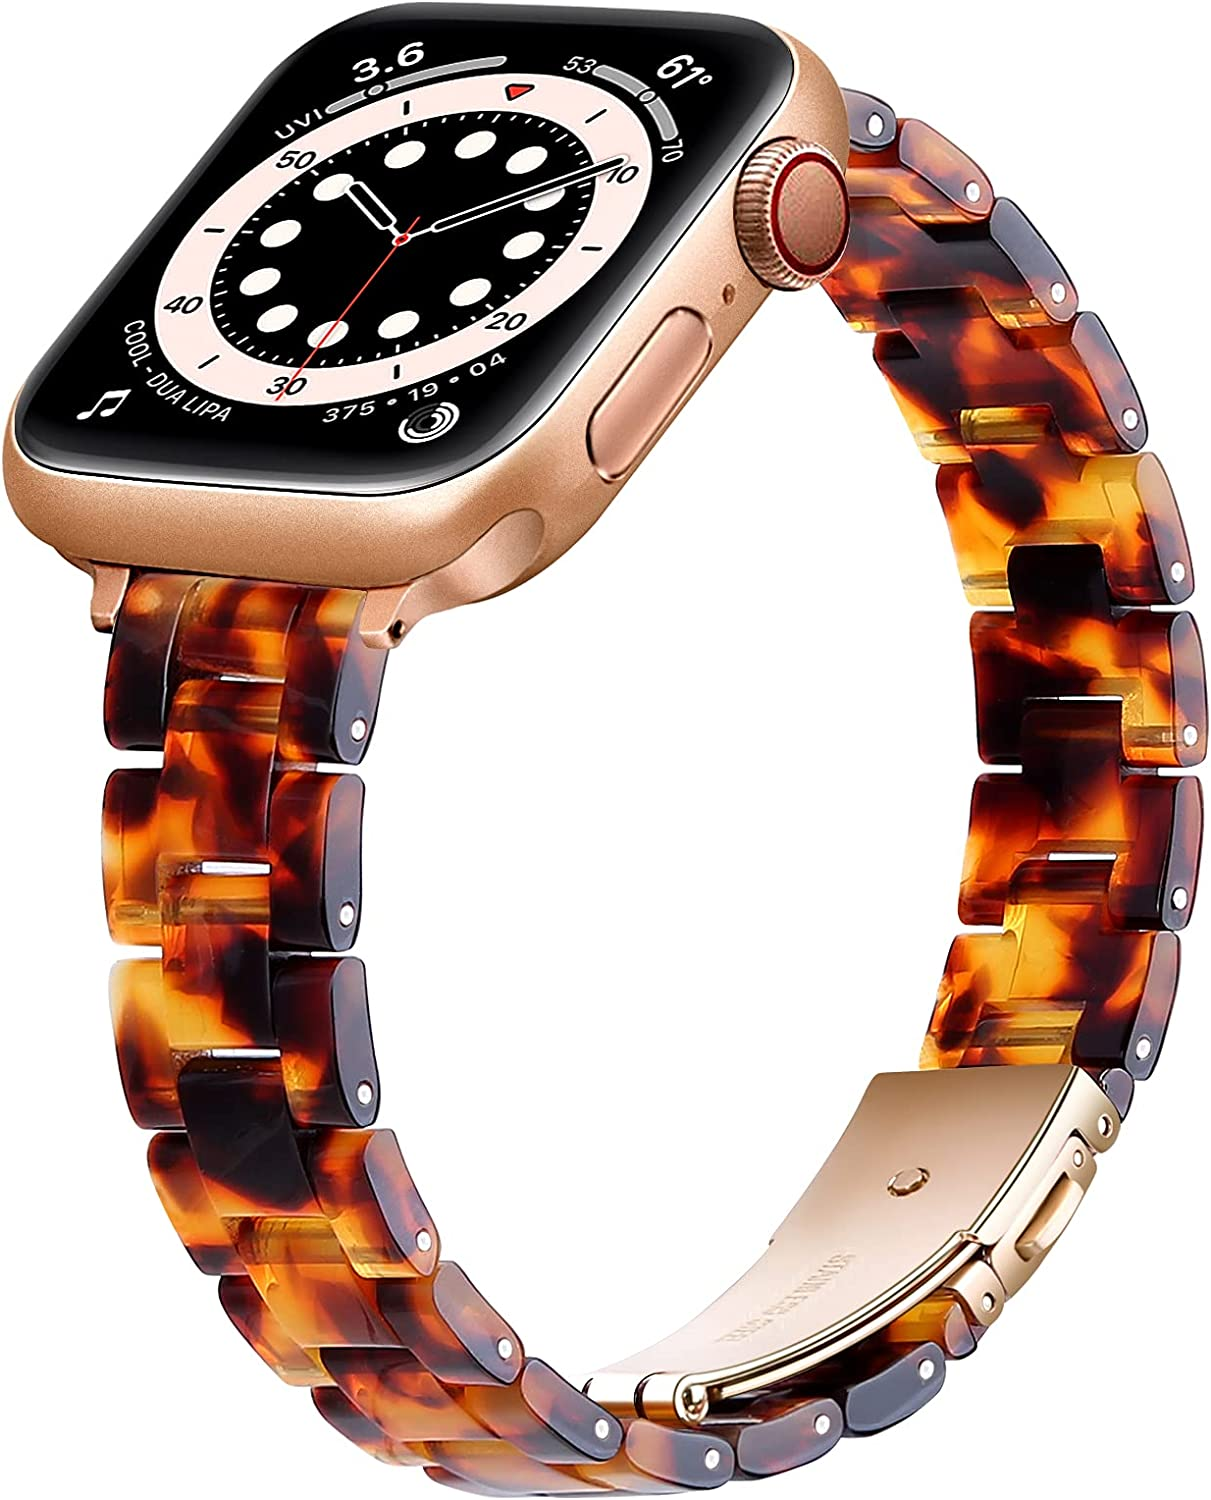 OUHENG Slim Resin Strap Compatible with Apple Watch Bands 40mm 38mm 44mm 42mm, Lightweight Thin Band with Metal Buckle for iWatch SE Series 6/5/4/3/2/1 (Tortoise Stone/Rose Gold, 40mm 38mm)